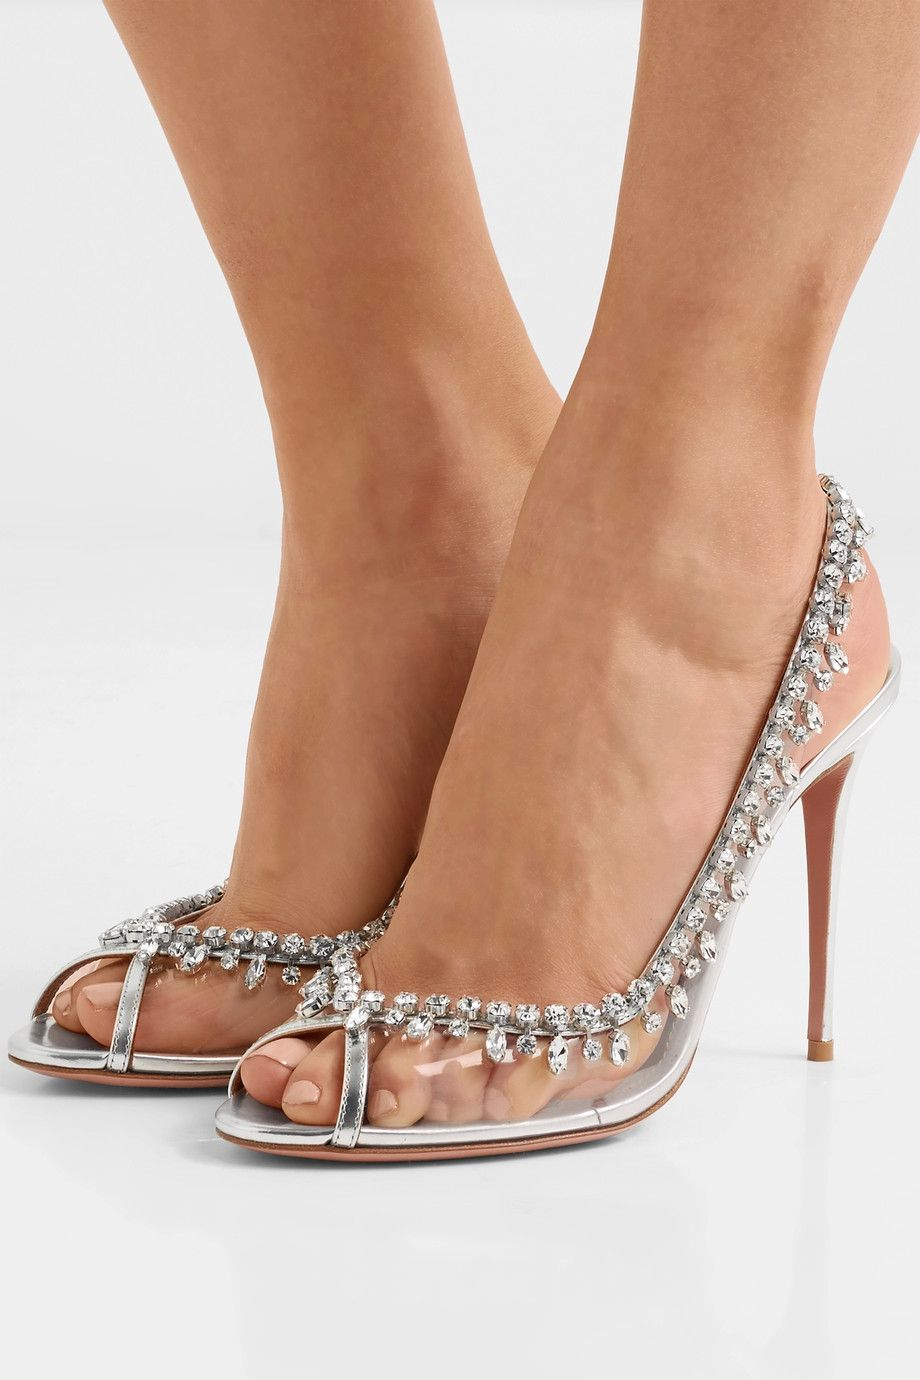 Aquazzura - Temptation embellished metallic leather and PVC slingback pumps